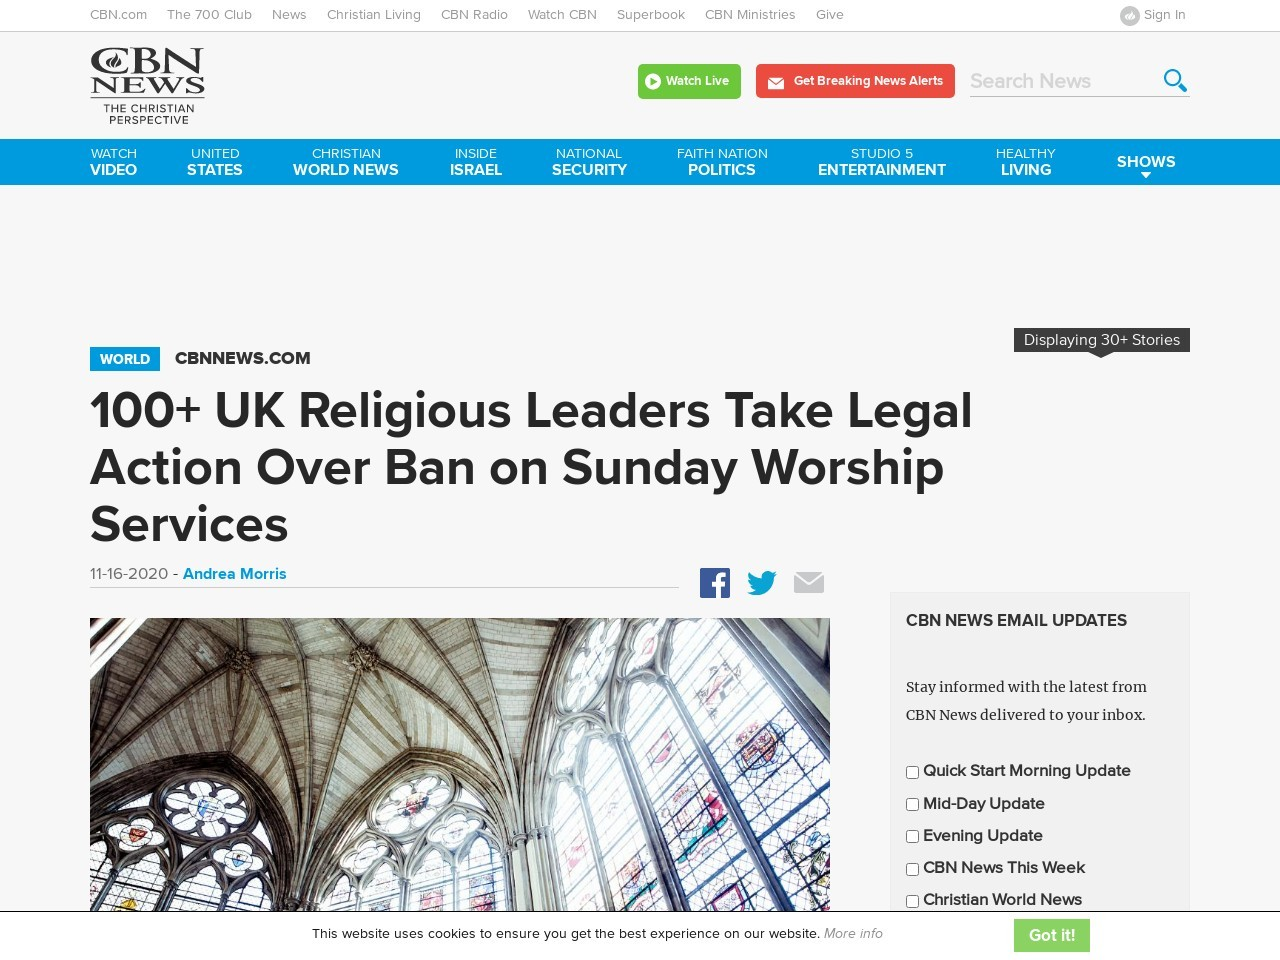 100+ UK Religious Leaders Take Legal Action Over Ban on Sunday Worship Services